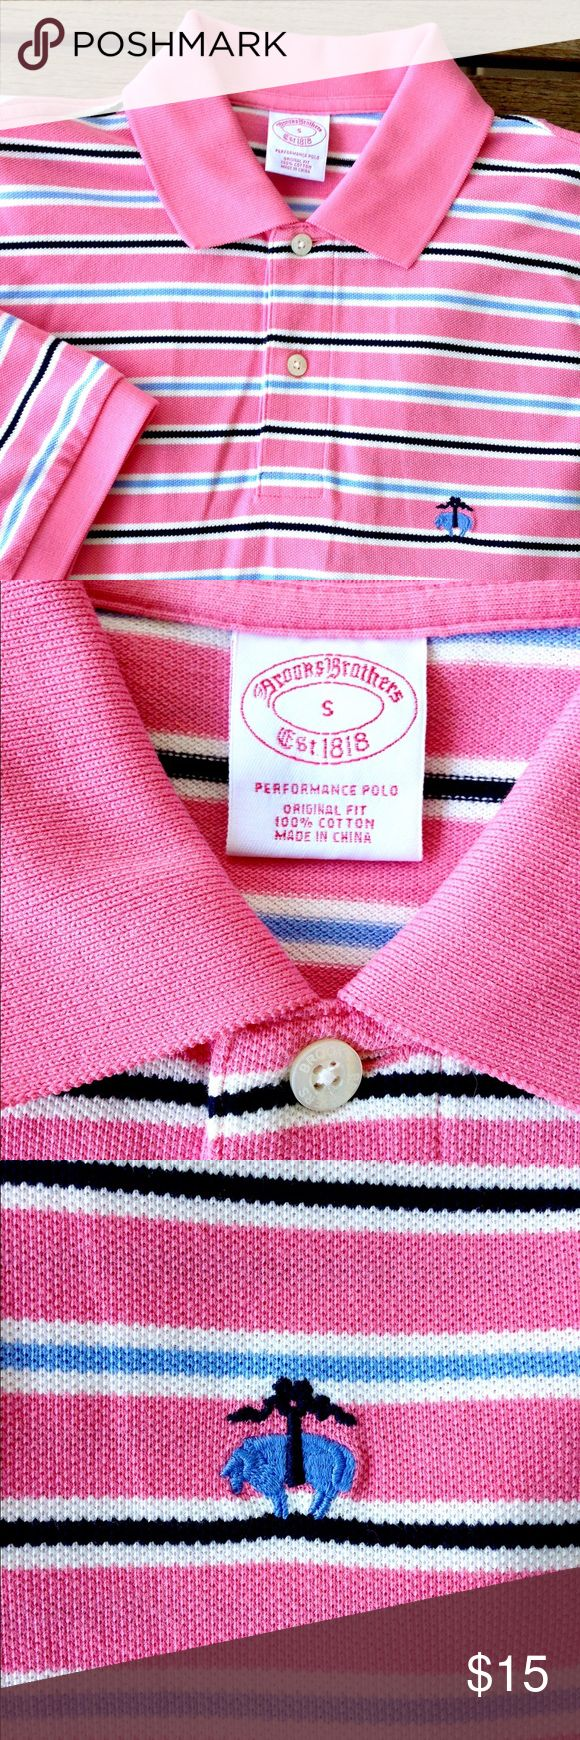 "BROOKS BROTHERS - Pink Striped Polo Shirt NWOT - Brooks Brothers, long known for quality craftsmanship & tradition! Never been worn pink polo shirt with blue, black & white stripes. Short sleeves with ribbed collar & sleeves, 2-button placket, traditional BB logo & tennis tail hem for easy tuck in.  20"" W across chest, 29 1/2"" L back hem. Brooks Brothers Shirts Polos"